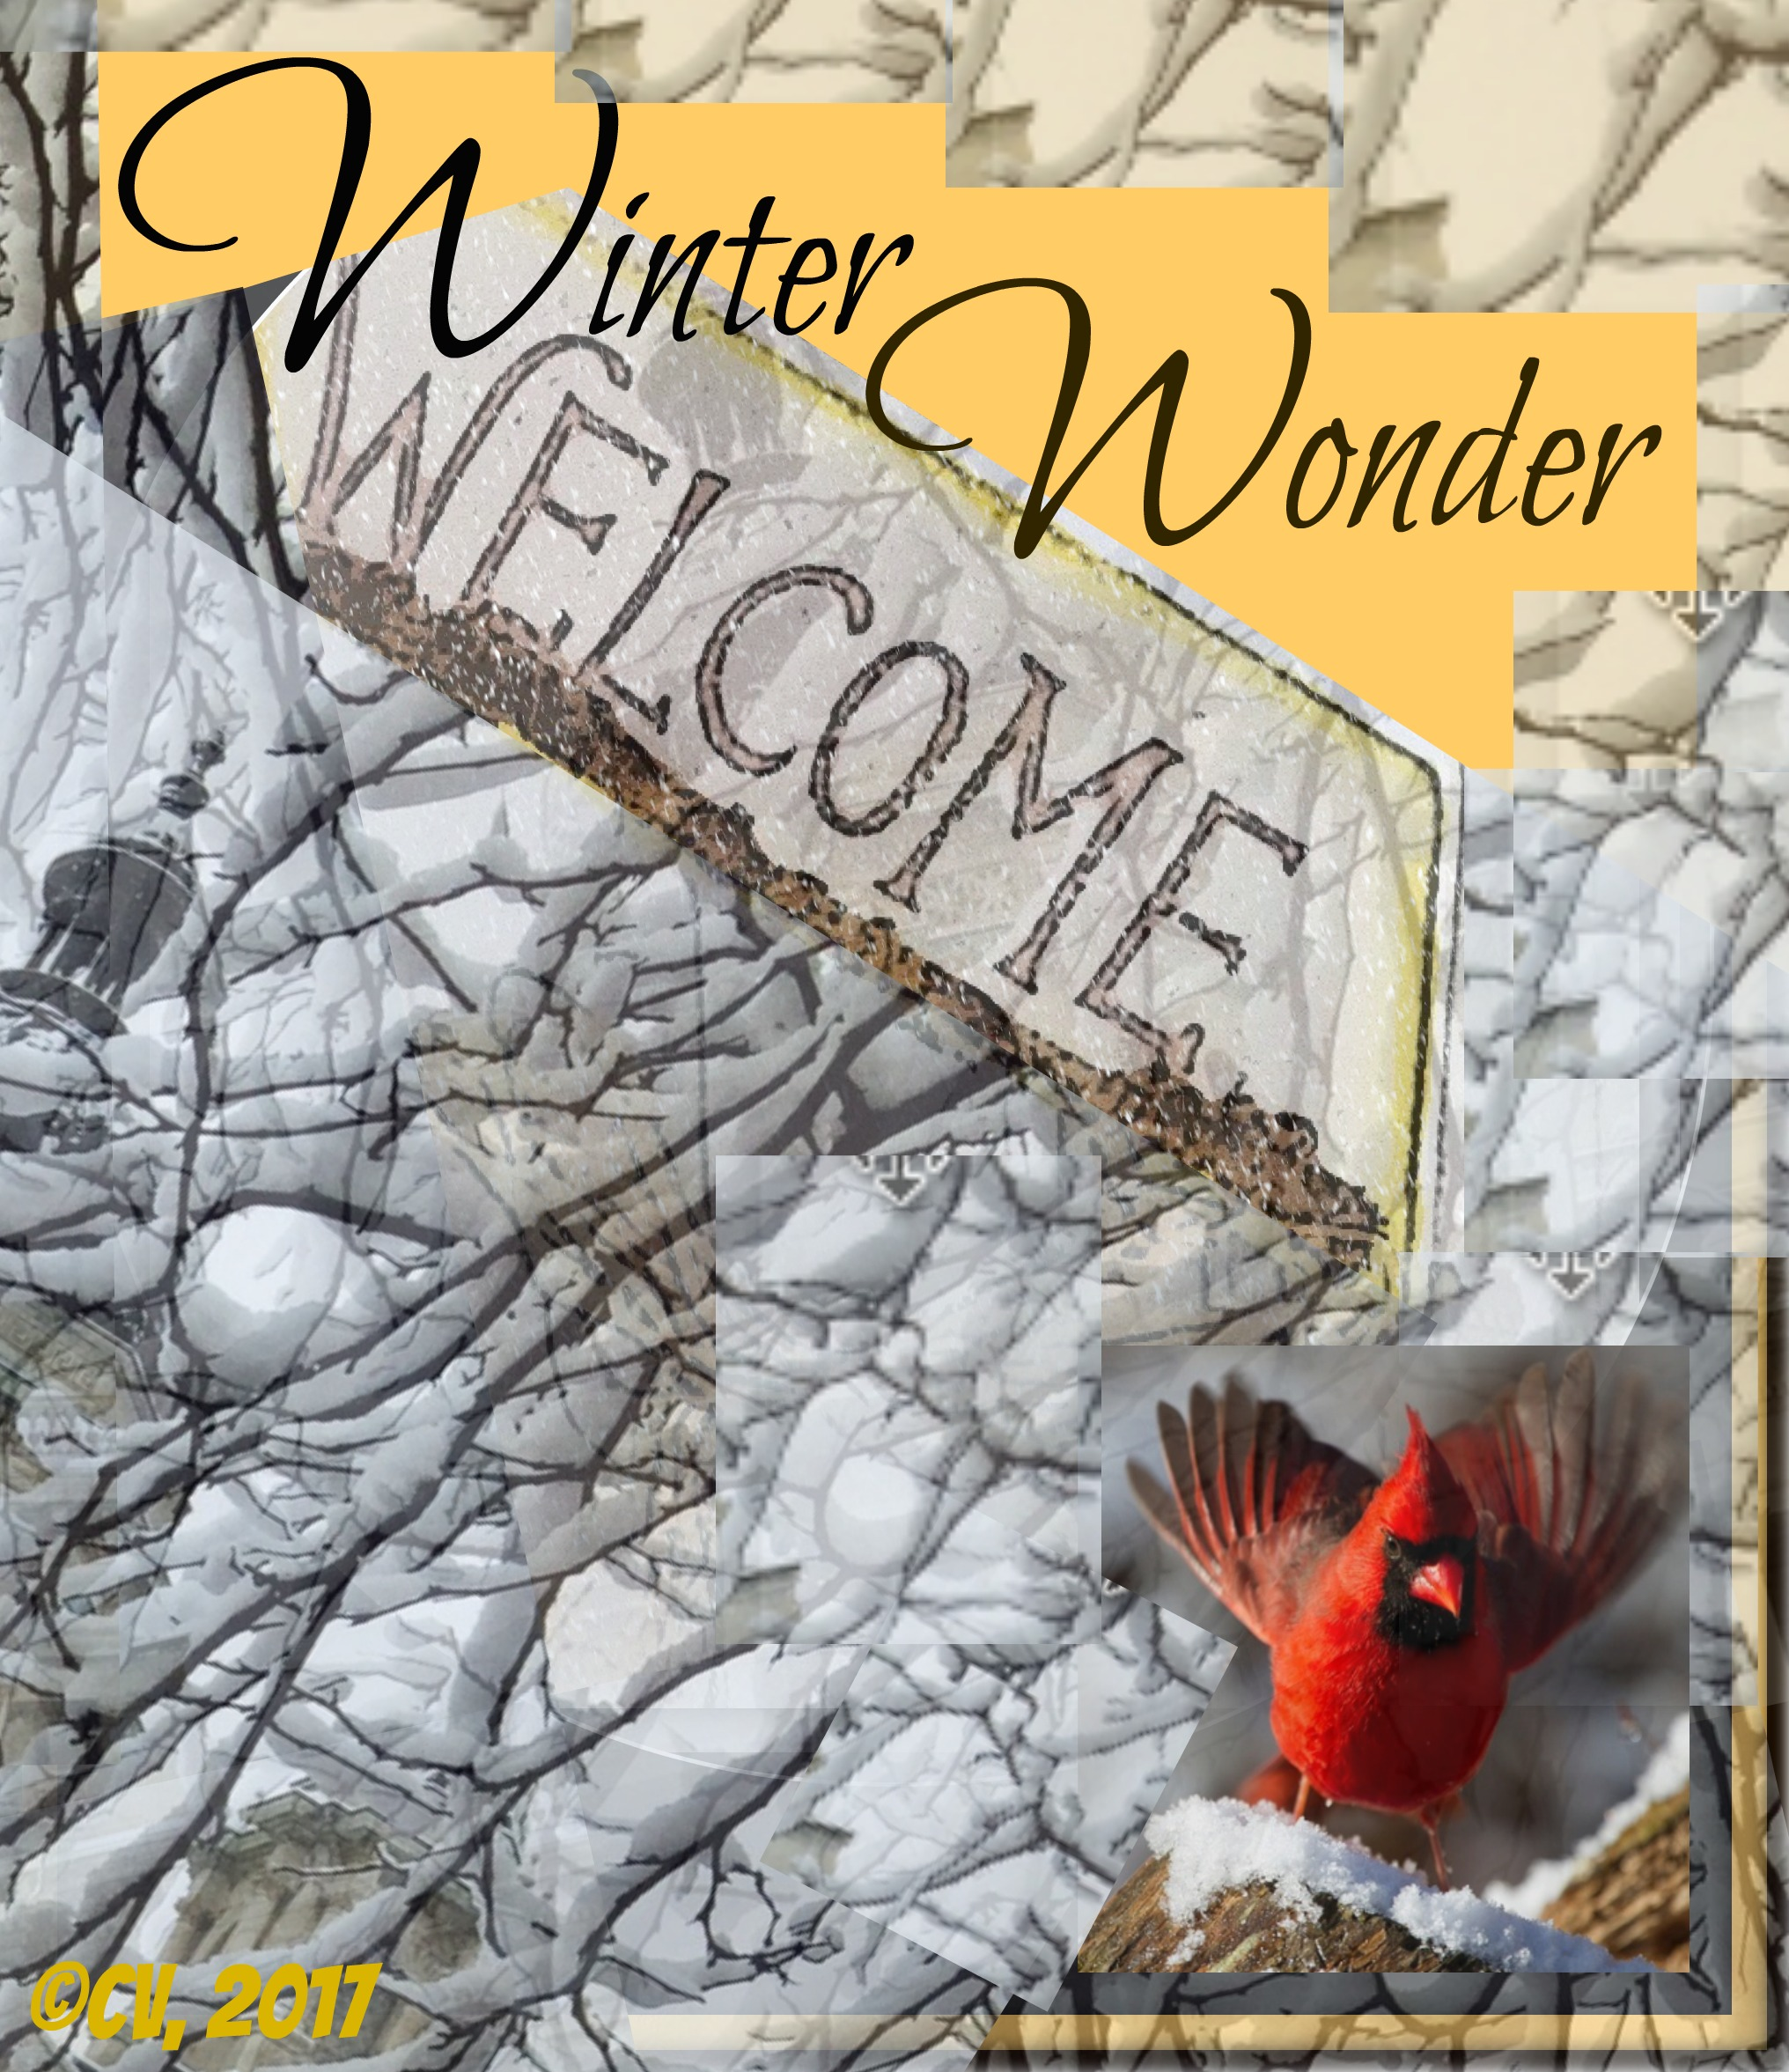 CV_Winter_Wonder_Cover_Shot.jpg